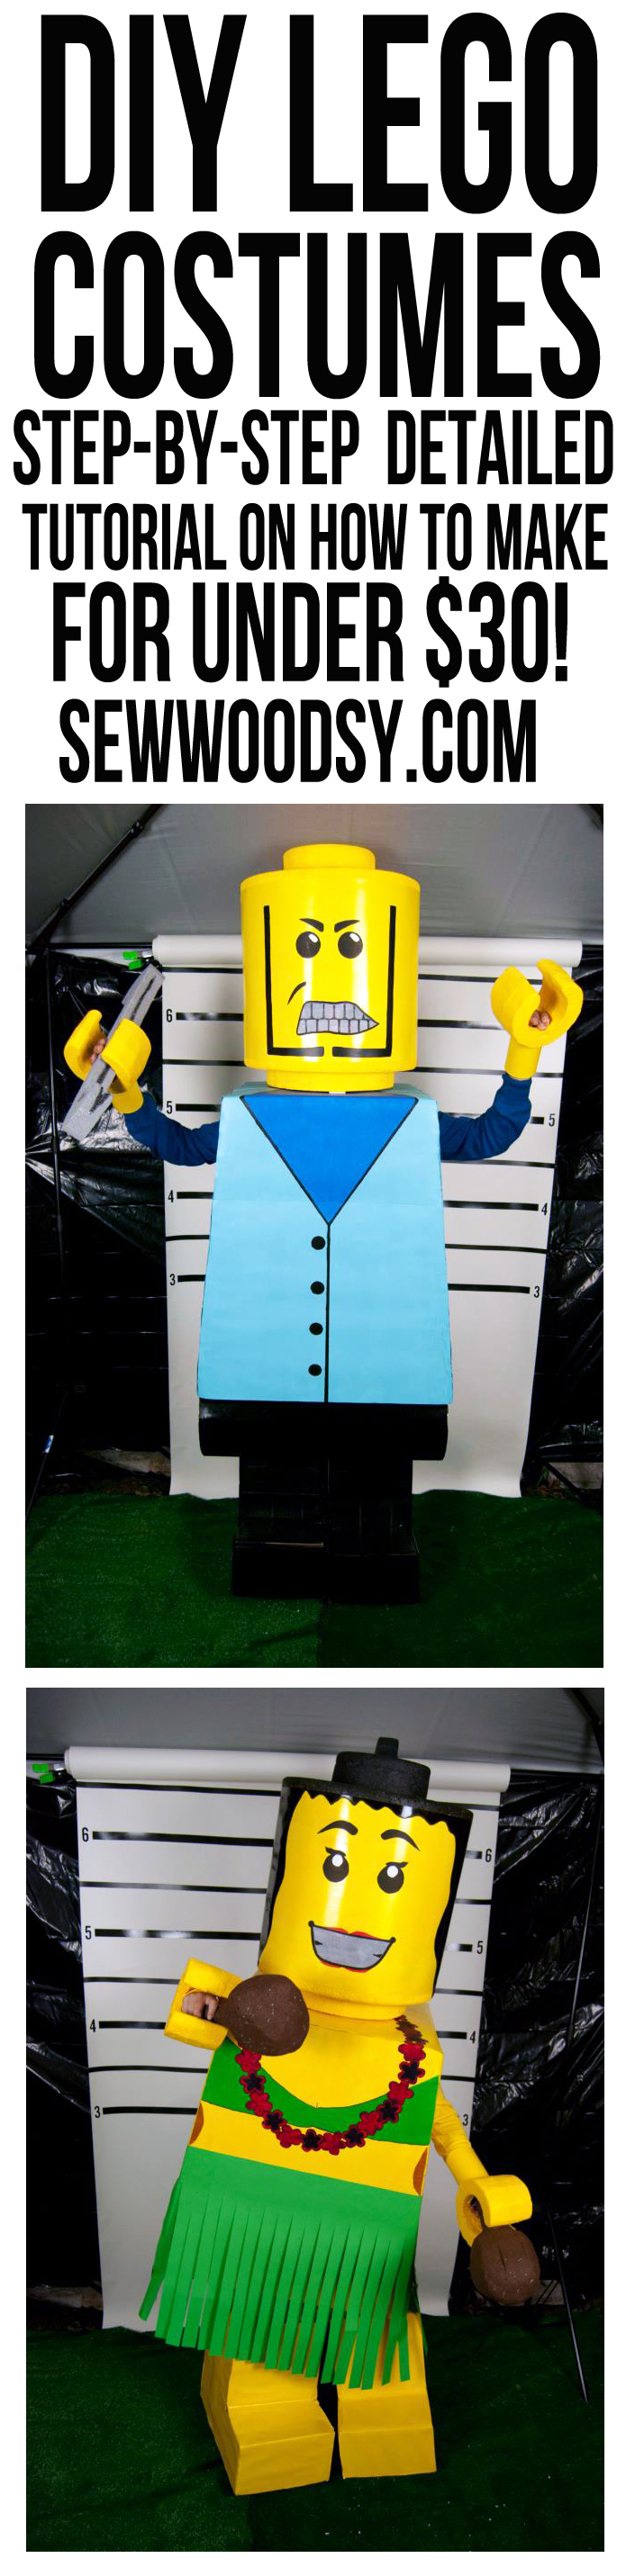 DIY Lego Costumes from SewWoodsy.com #Halloween #Costume